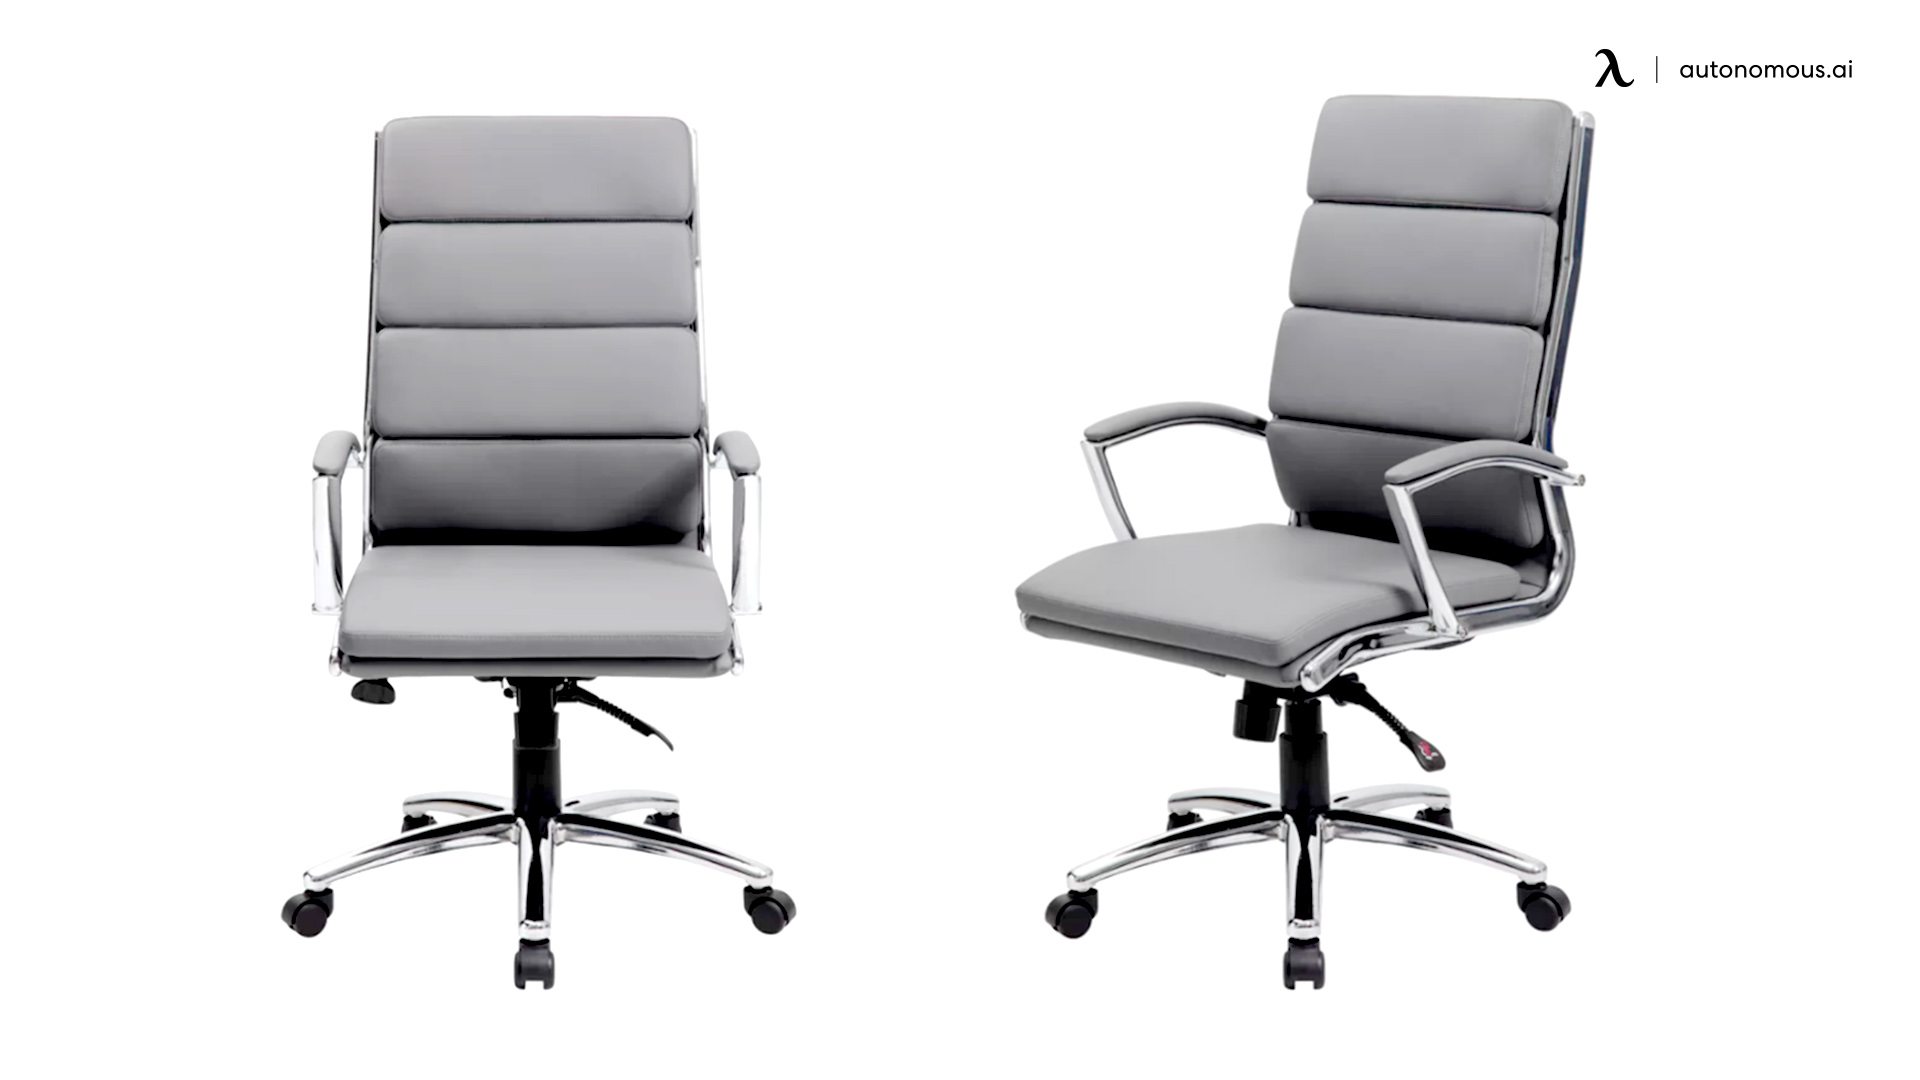 The Heinrike Caressoft Plus Conference Chair